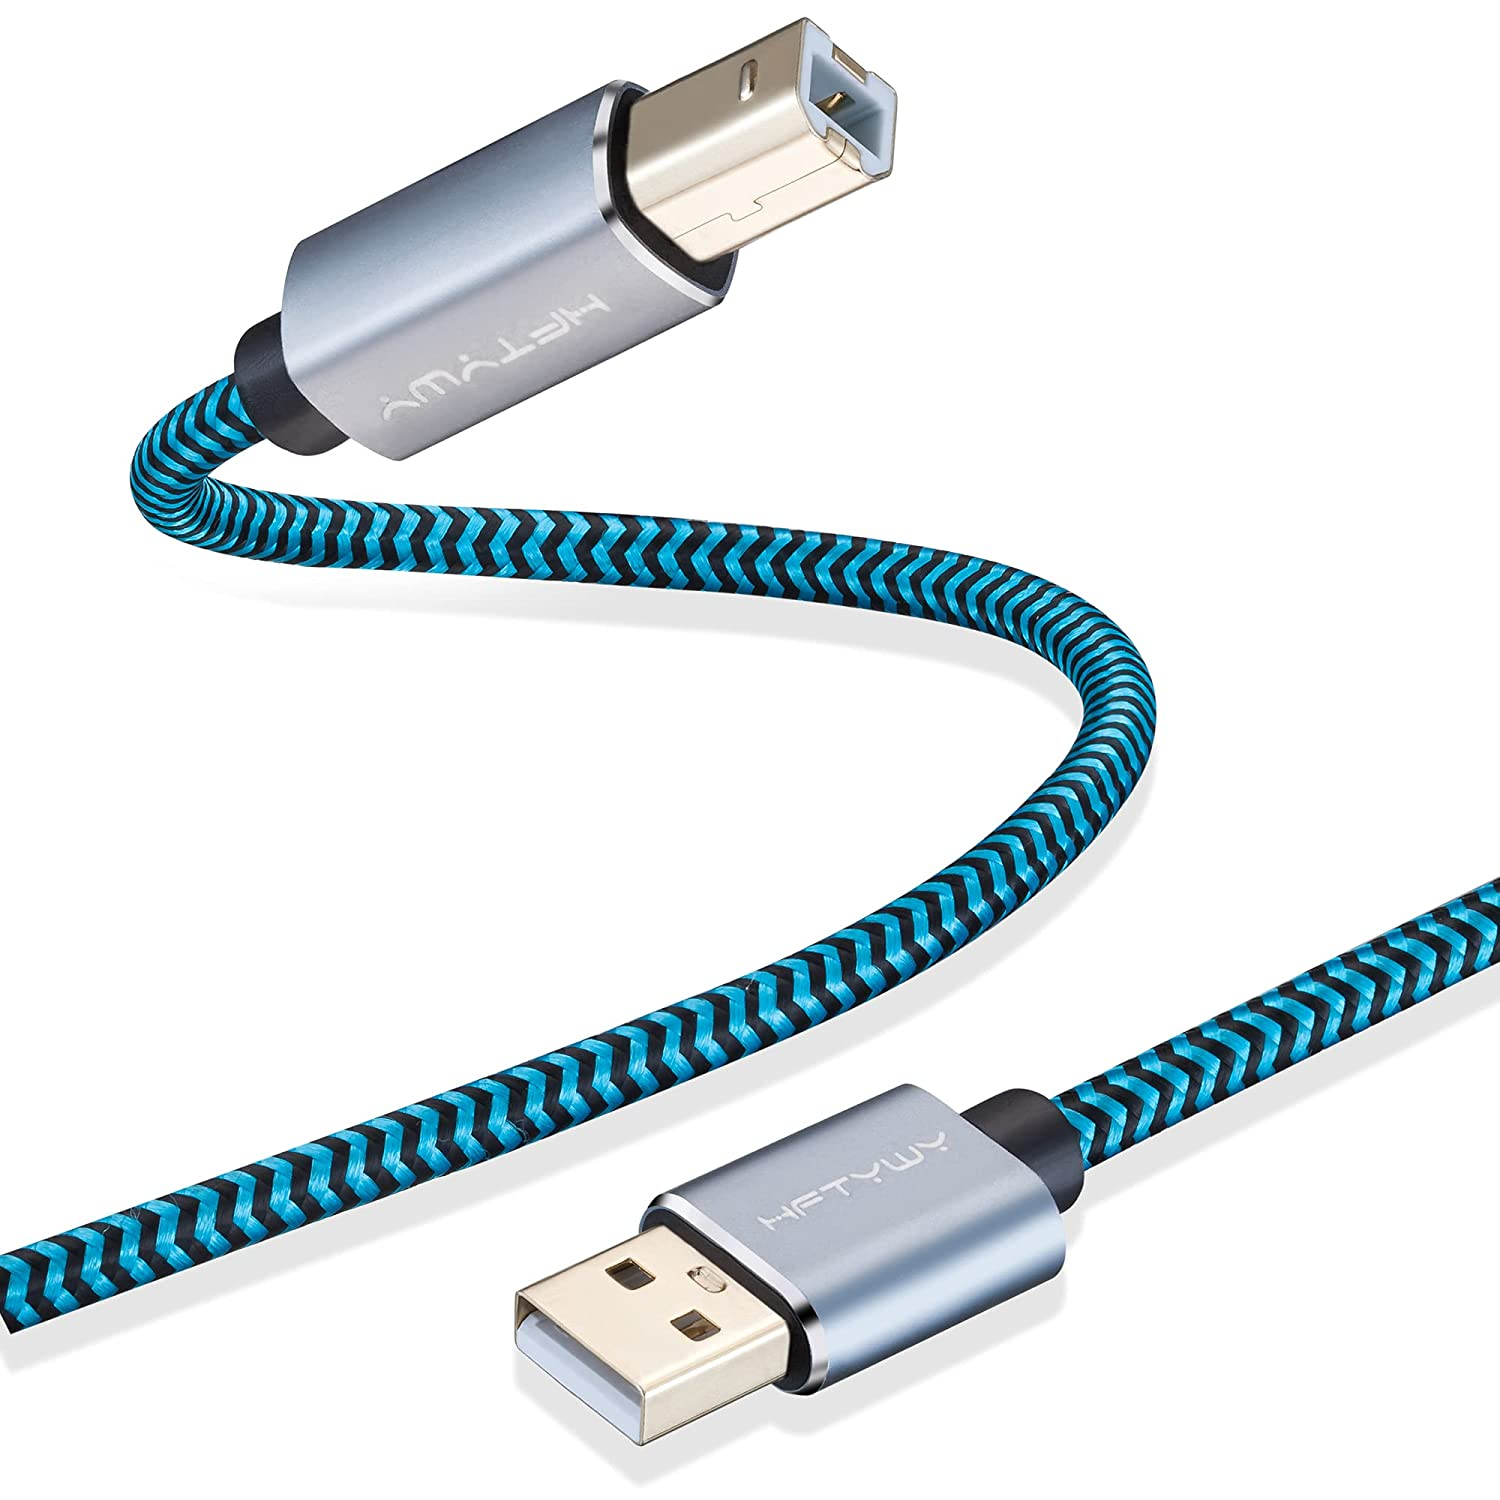 Printer Cable, 25 FT USB Printer Cable Braid Long USB Printer Cord 2.0 Type A Male to B Male Cable Scanner Cord High Speed Compatible with HP, Canon, Dell, Epson, Samsung and More